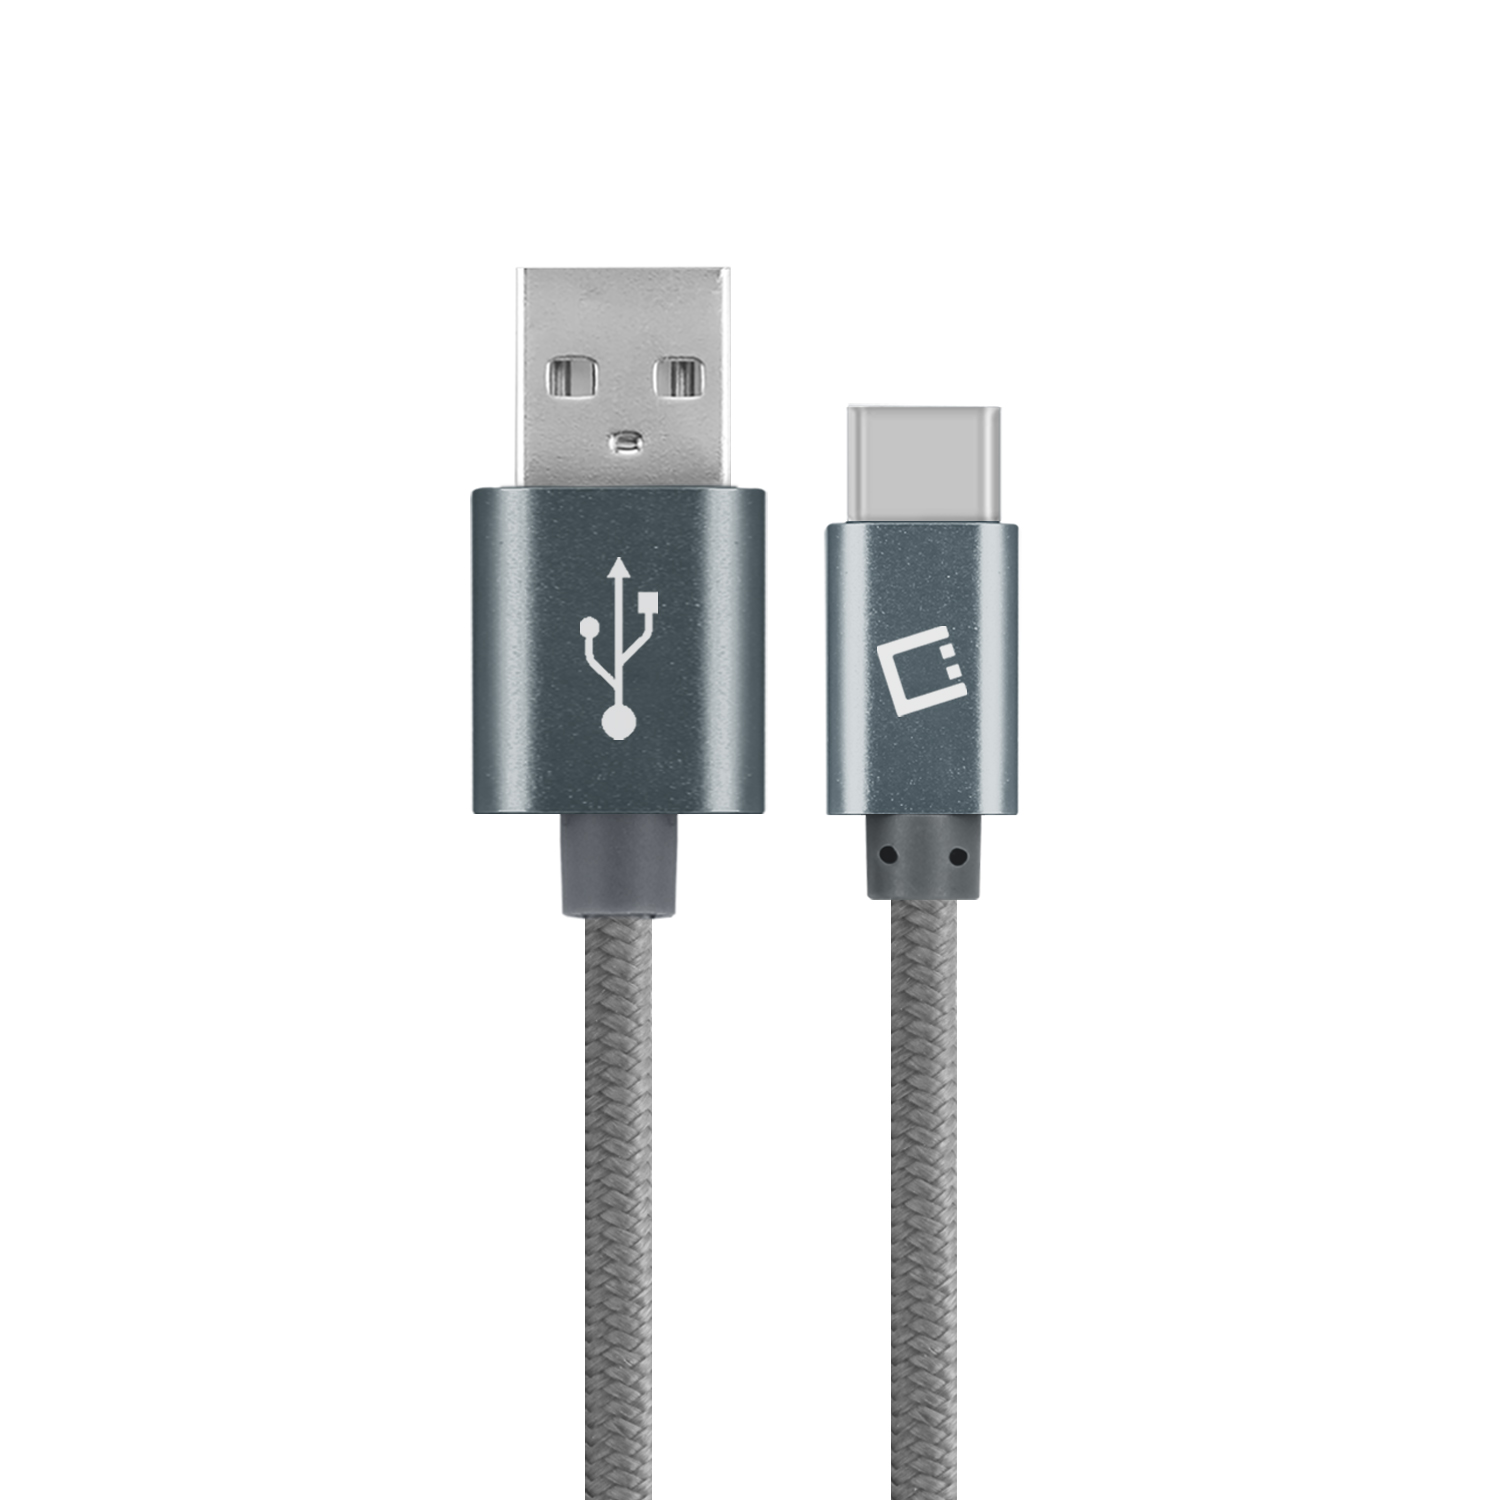 Sony Xperia XZ1 USB Type-C To Type-A Braided Data Power Cable Grey 6ft Braided